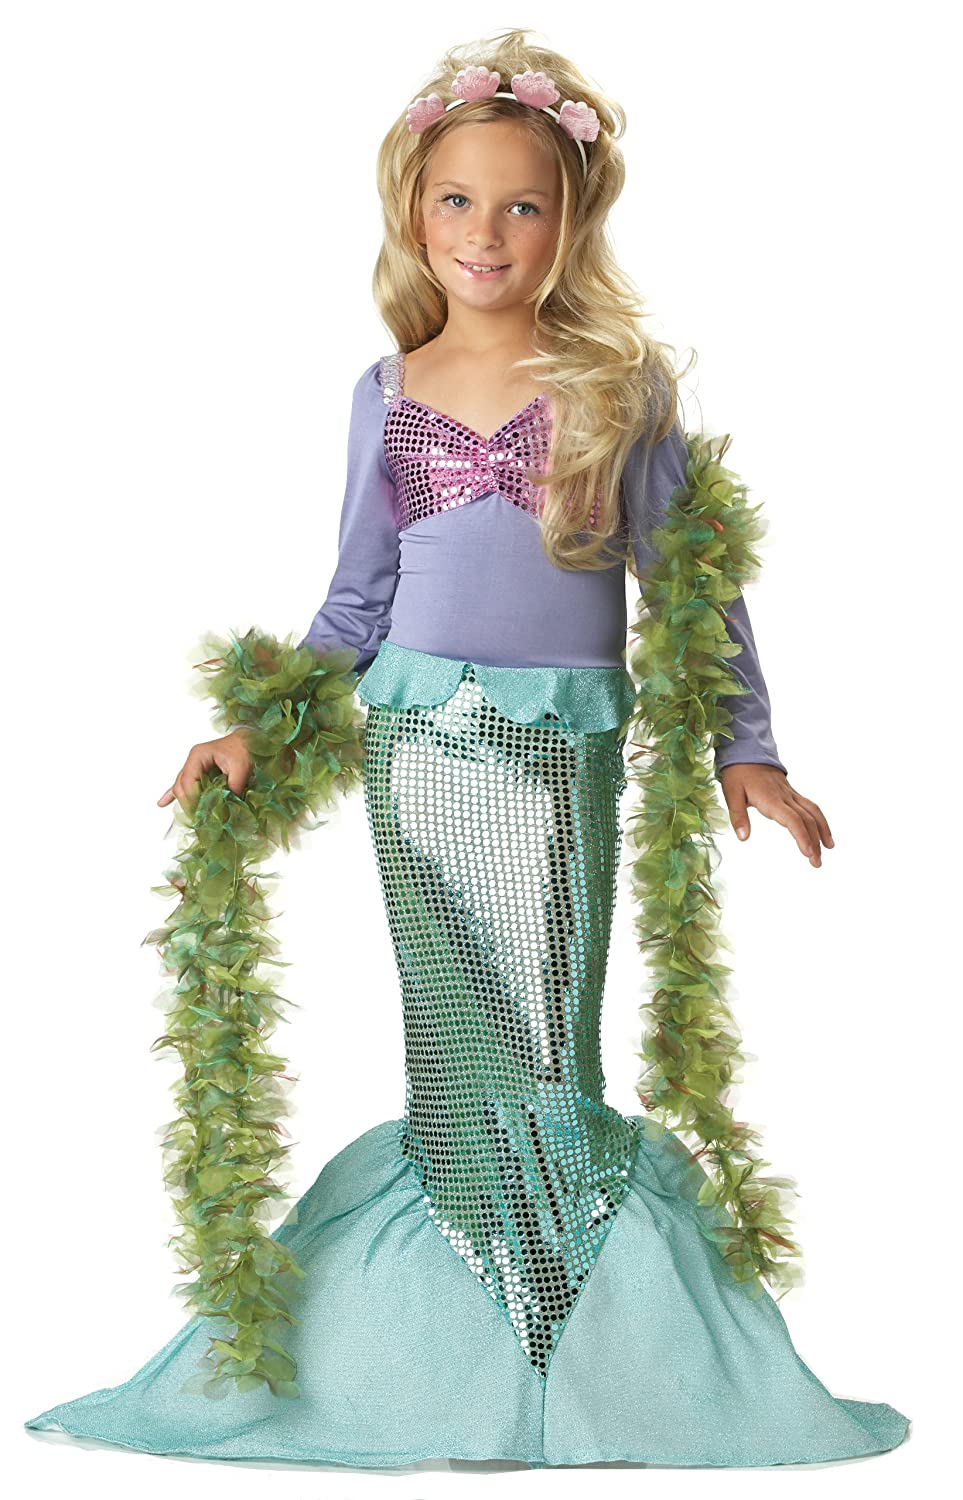 California Costumes Toys Little Mermaid Costume California Costumes - Toys 00246-Parent